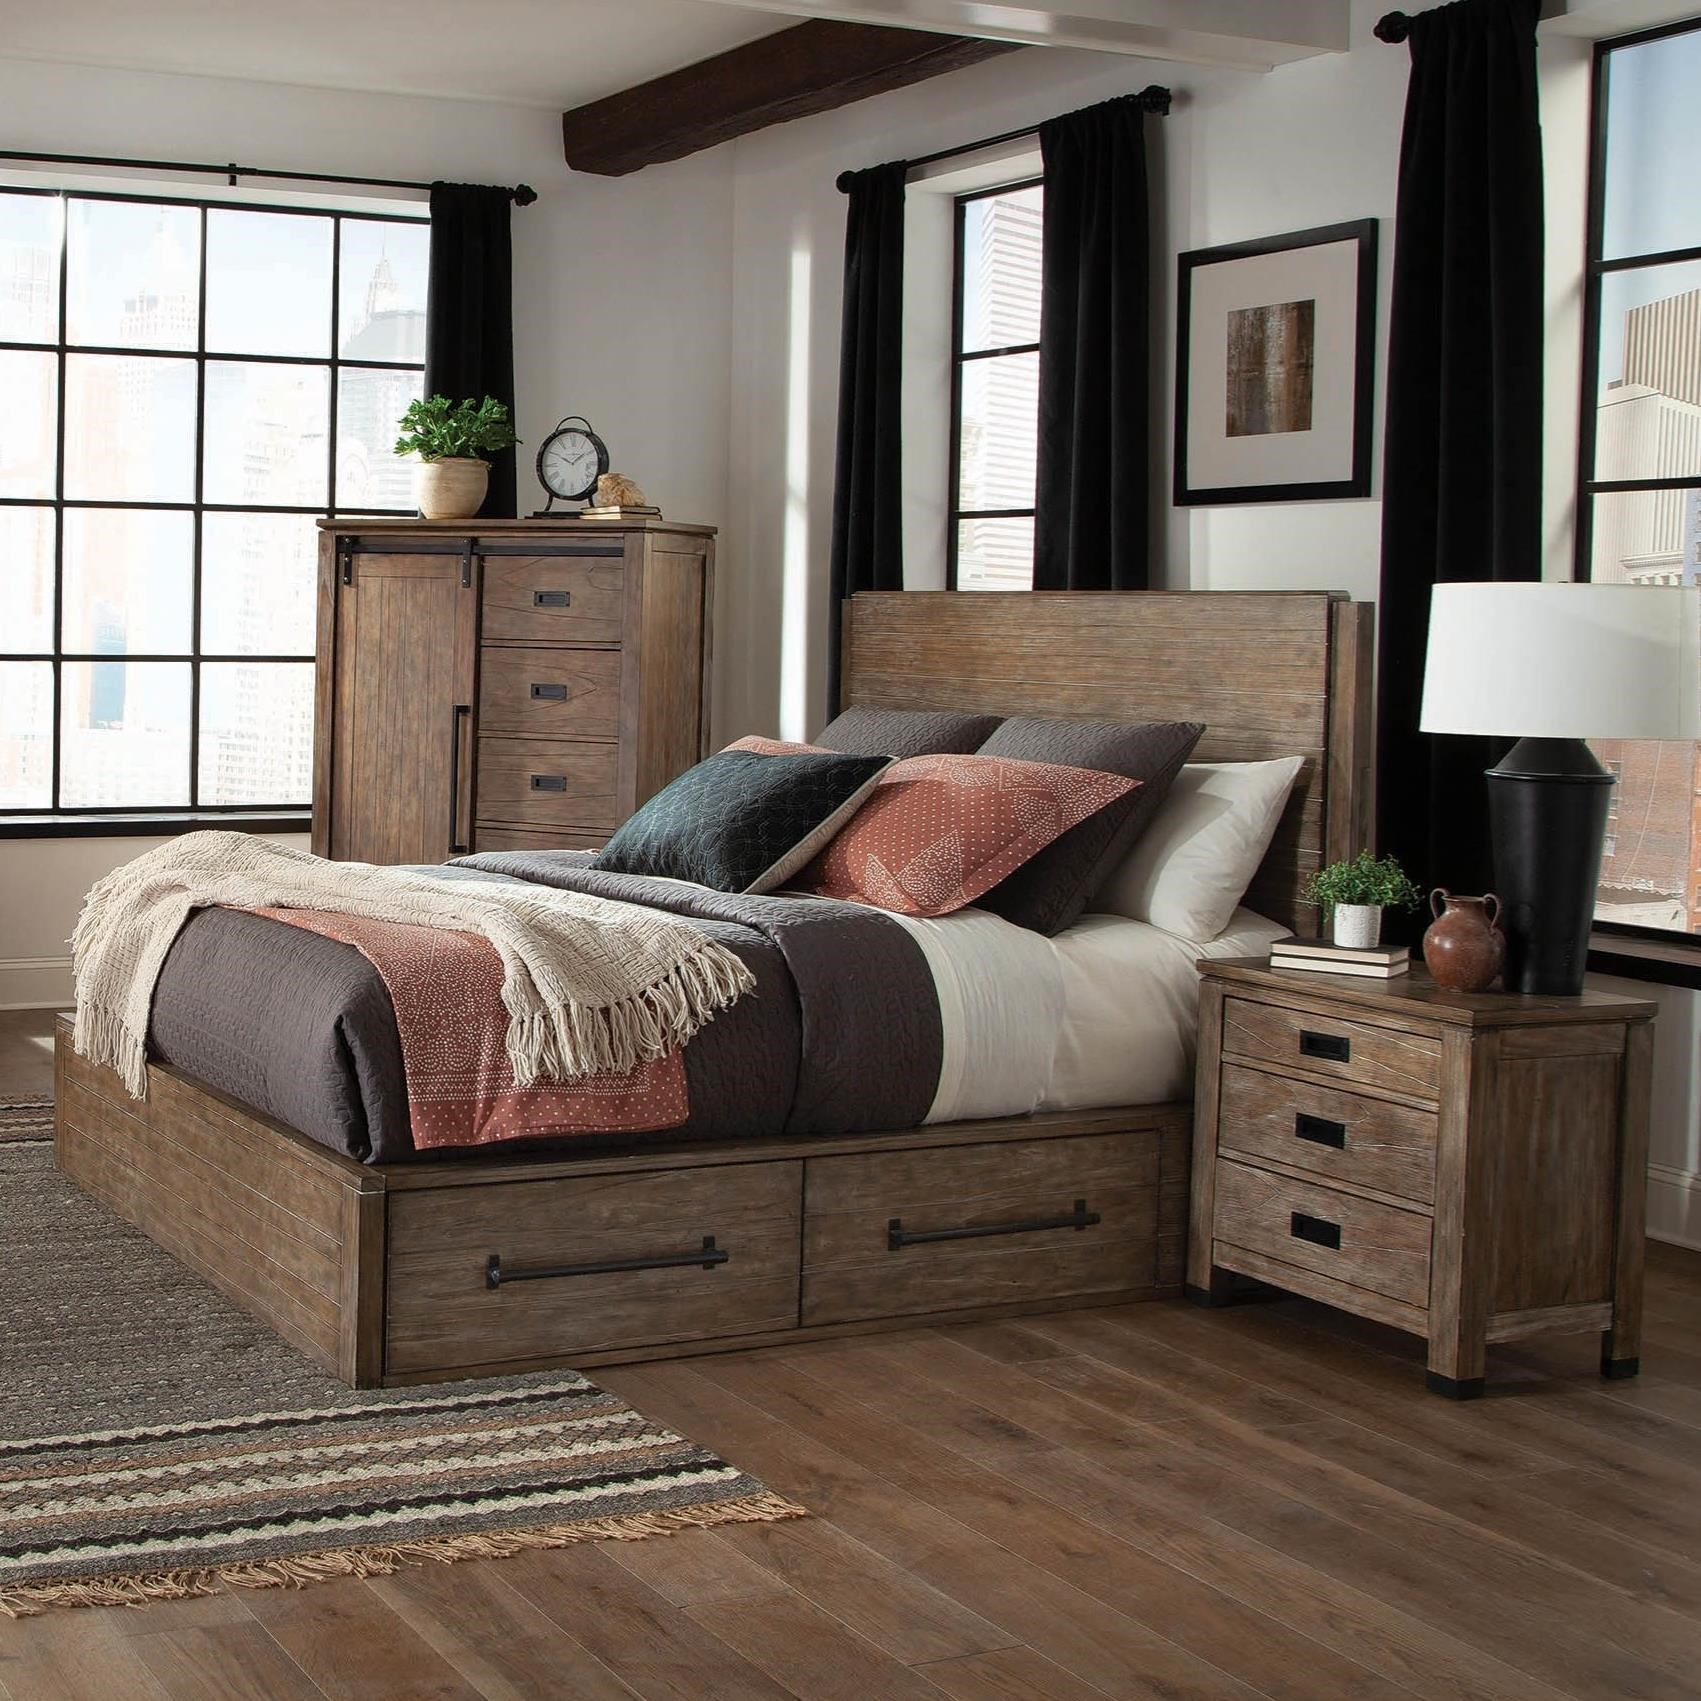 Beautiful Twin Sleigh Bed Image Of Bed Style